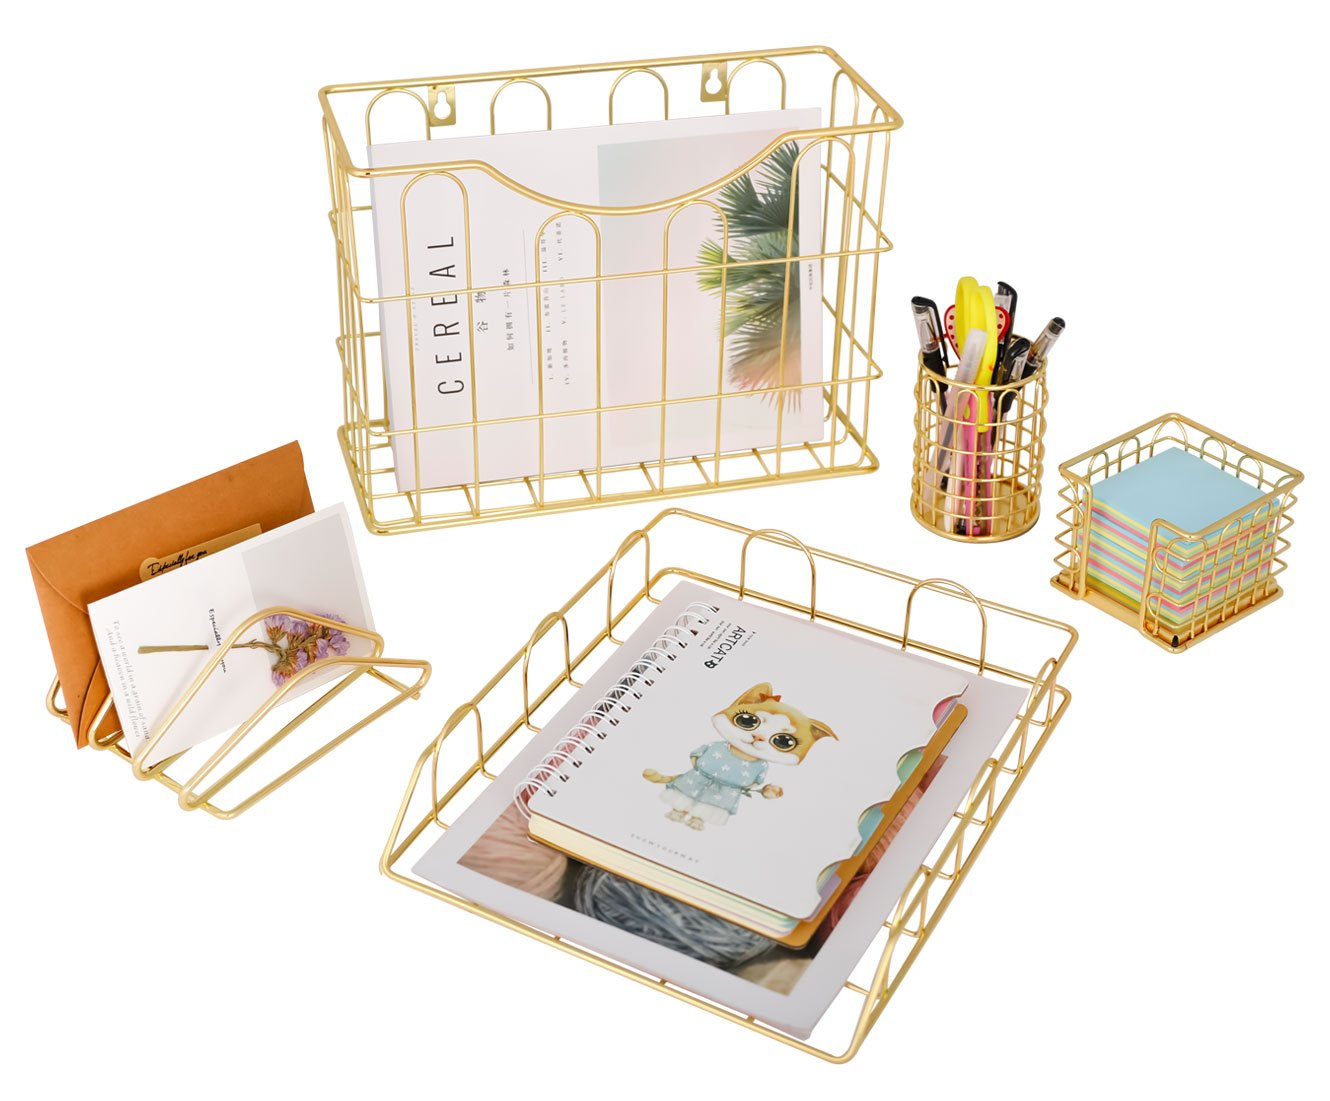 Superbpag Office 5 in 1 Desk Organizer Set Gold- Letter Sorter, Pencil Holder, Stick Note Holder, Hanging File Organizer and Letter Tray by Superbpag